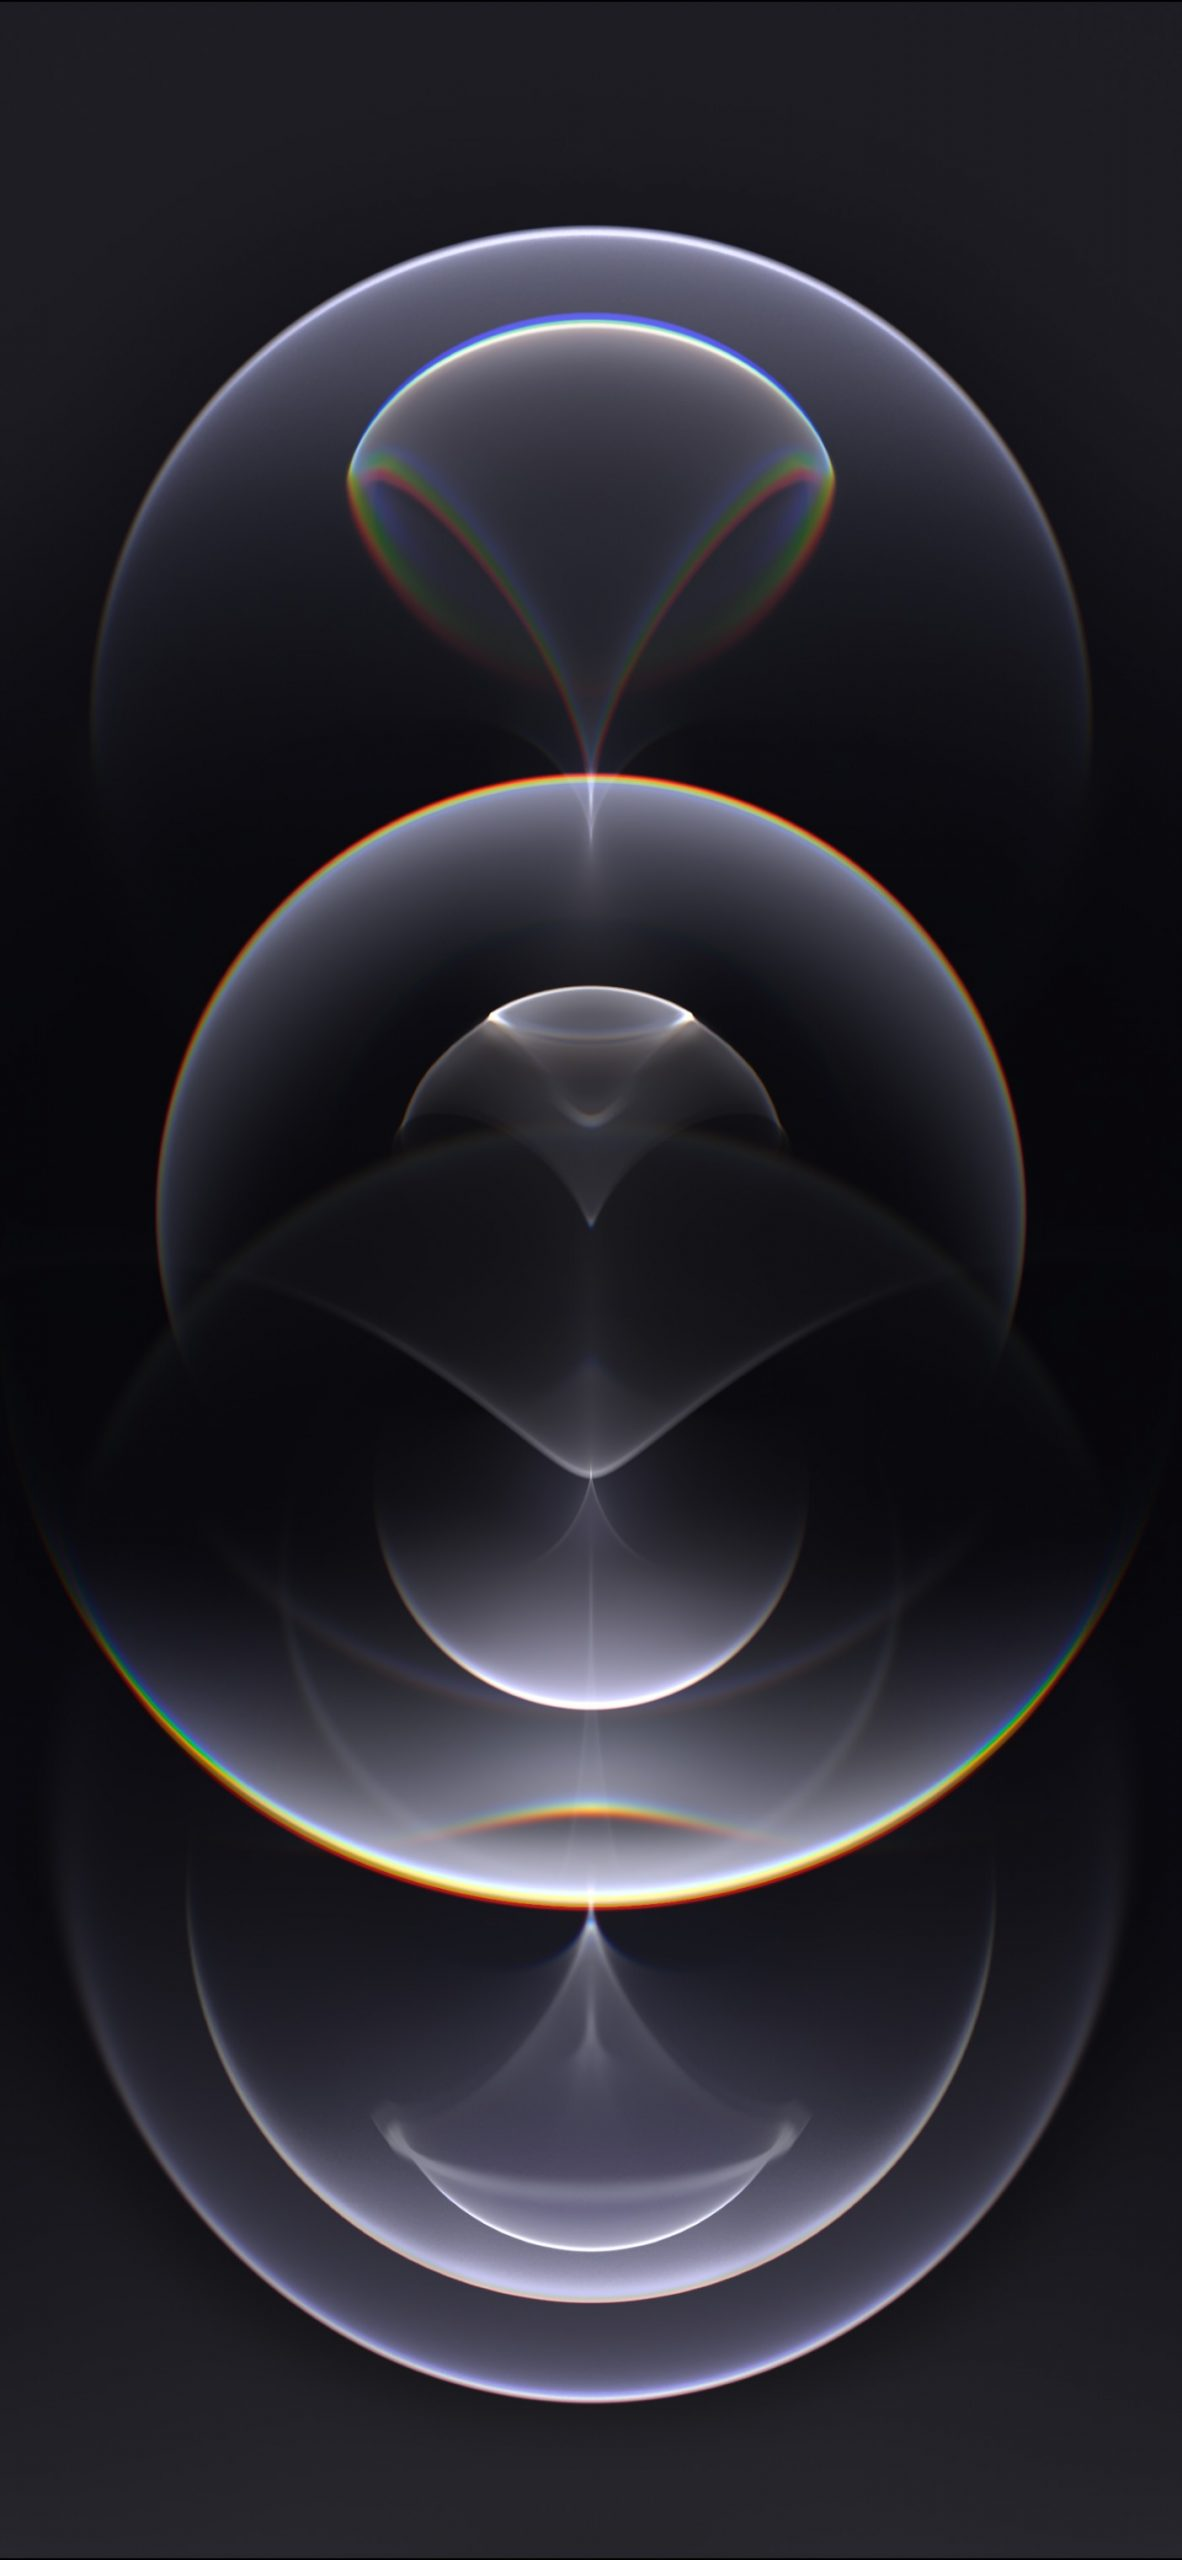 apple iphone 12 pro wallpapers 2 scaled